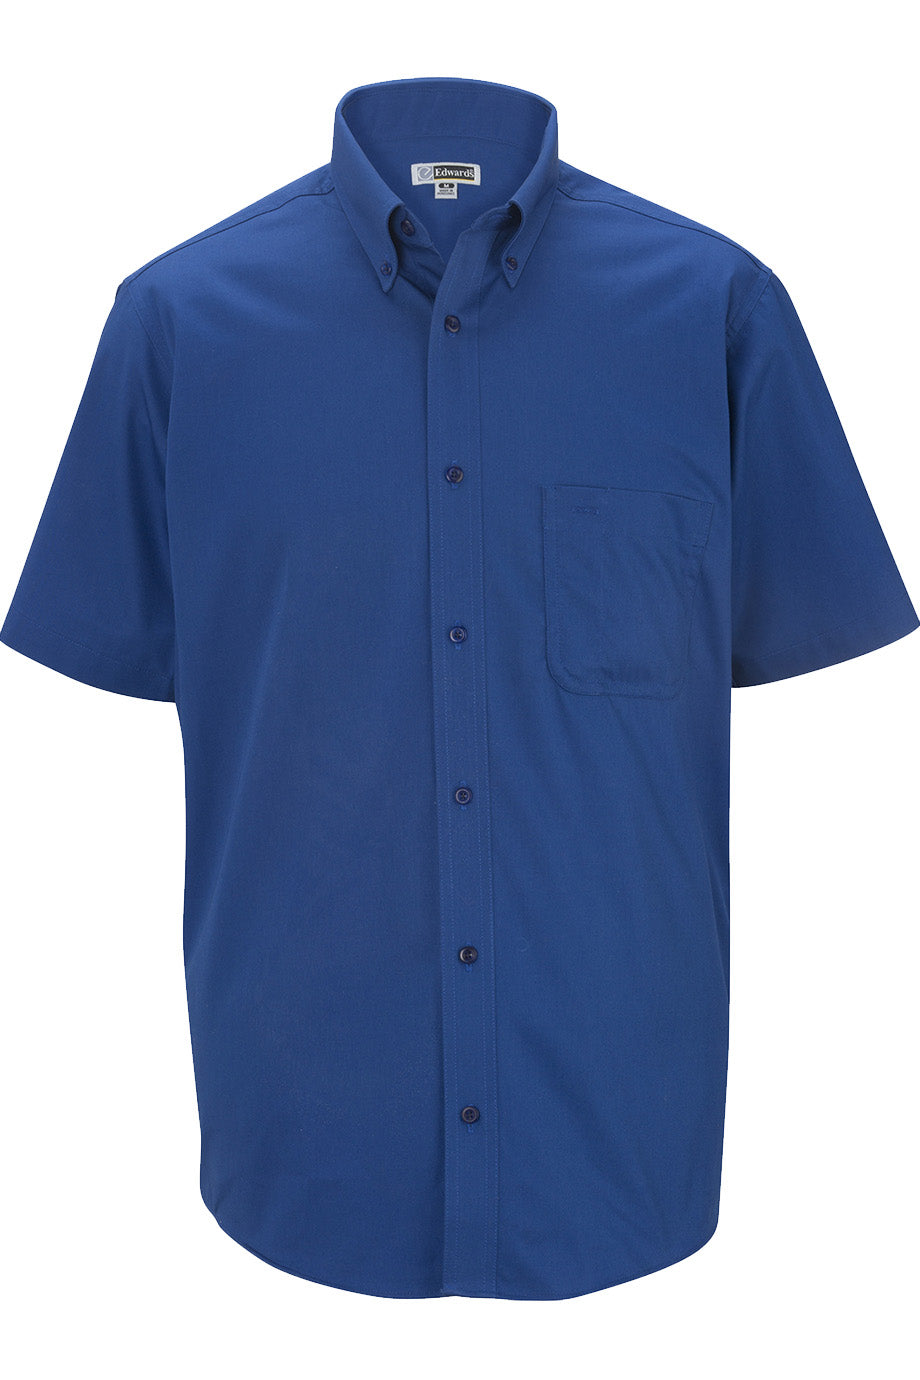 Royal Edwards Mens Cottonplus Short Sleeve Twill Shirt